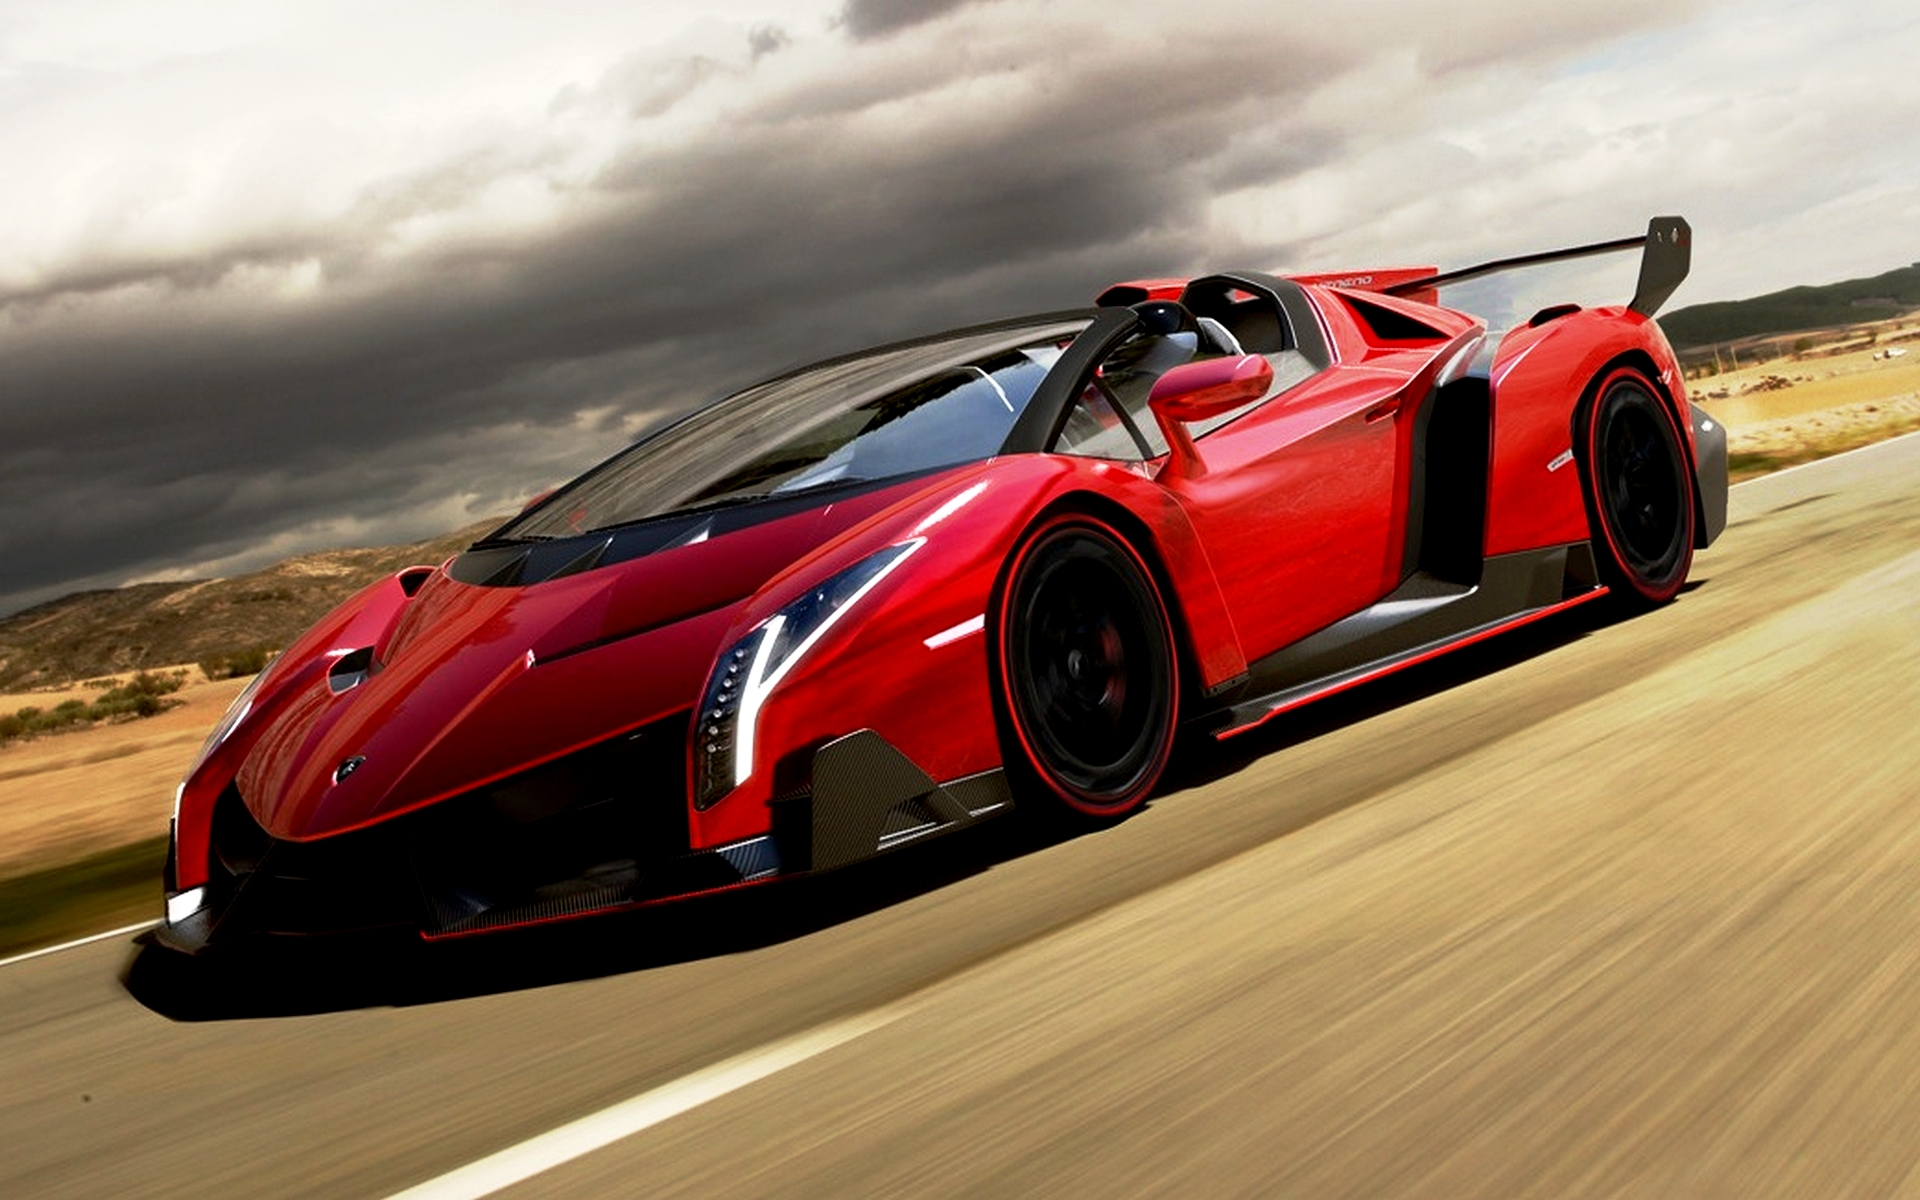 Lamborghini Veneno Wallpaper 969 Desktop Images